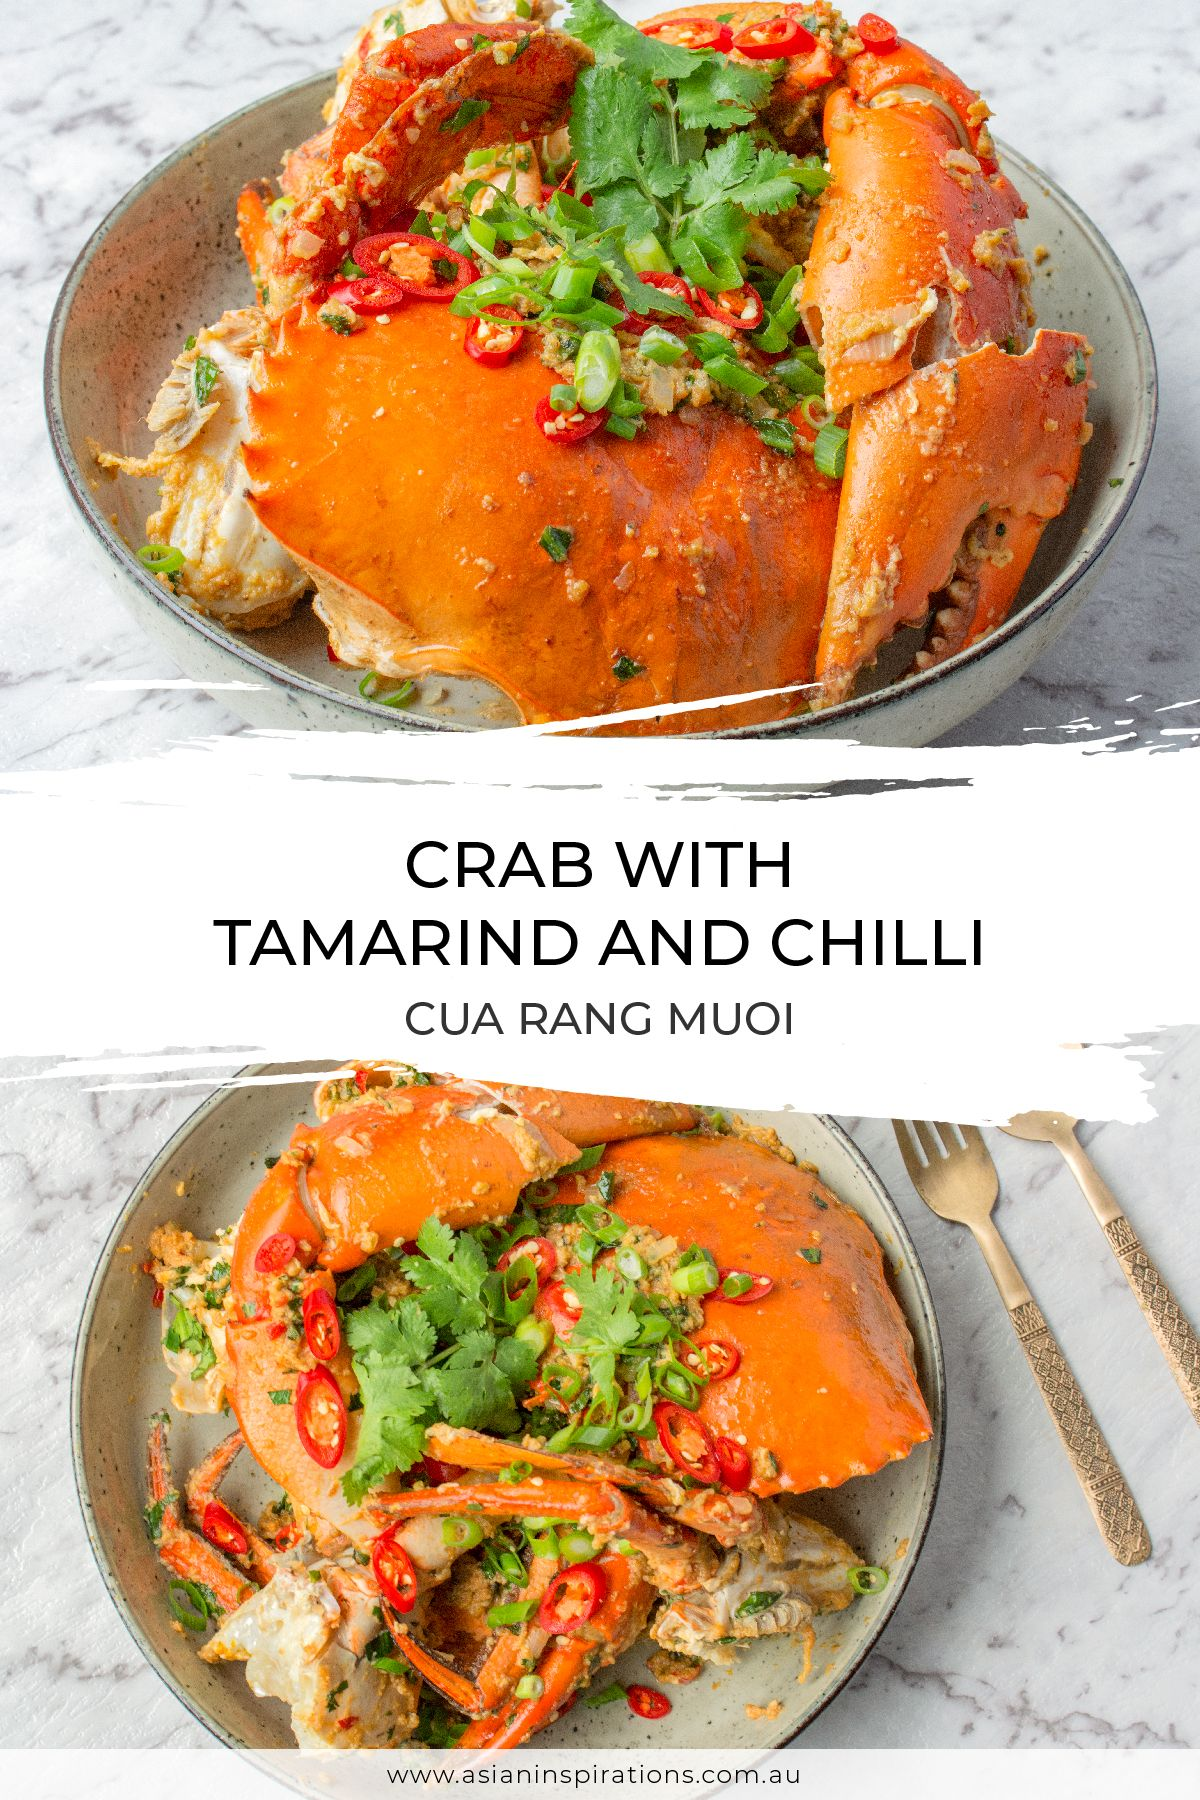 crab with tamarind and chilli cua rang muoi  recipe